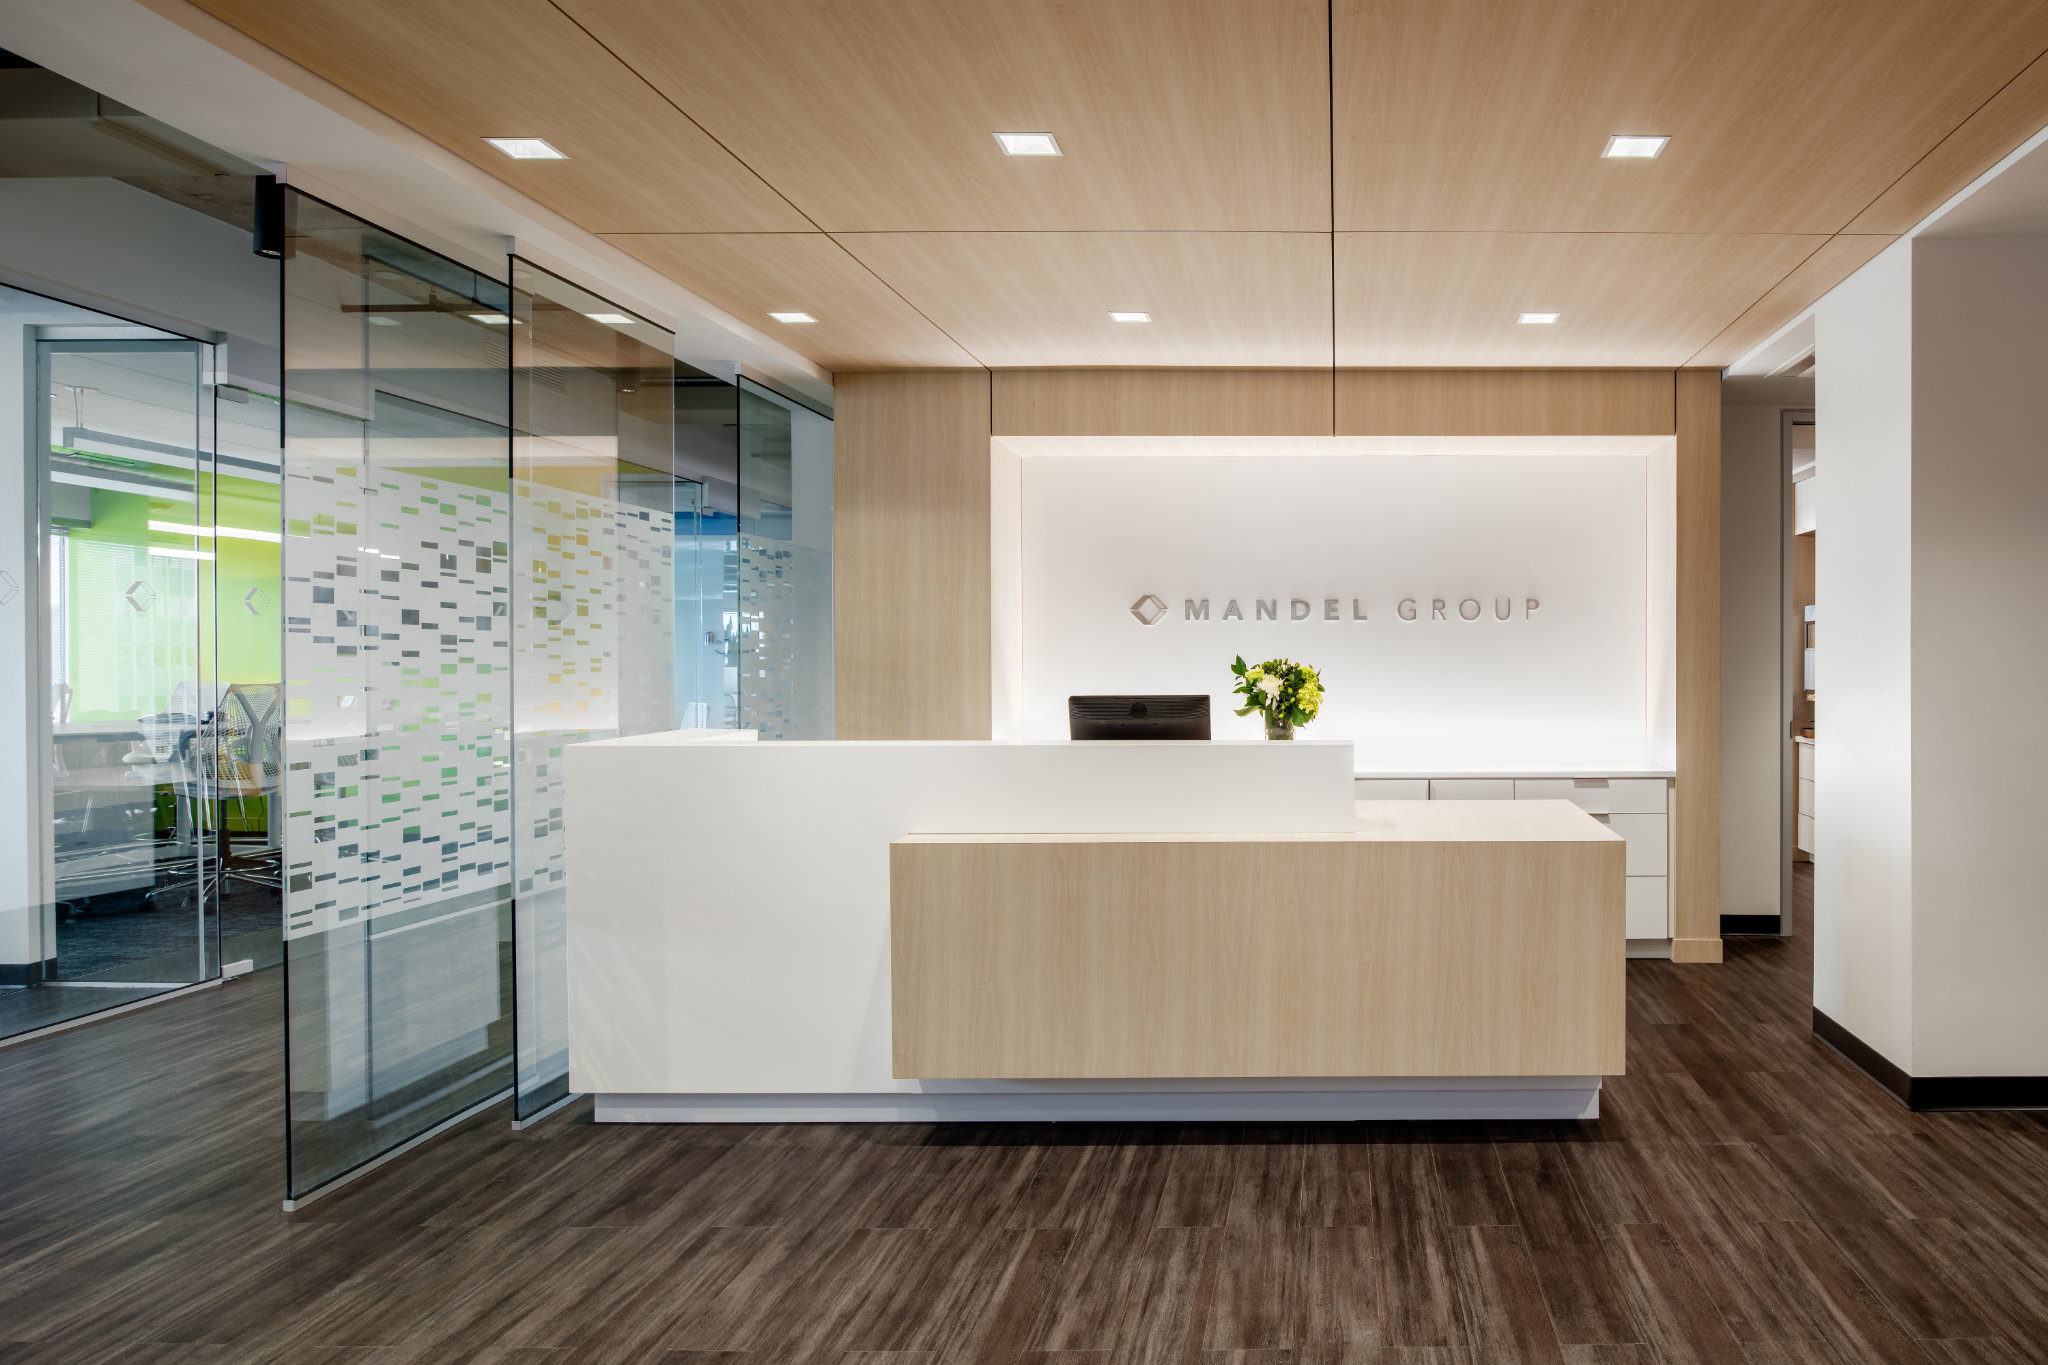 Mandel Group Offices - HGA Architects & Engineers